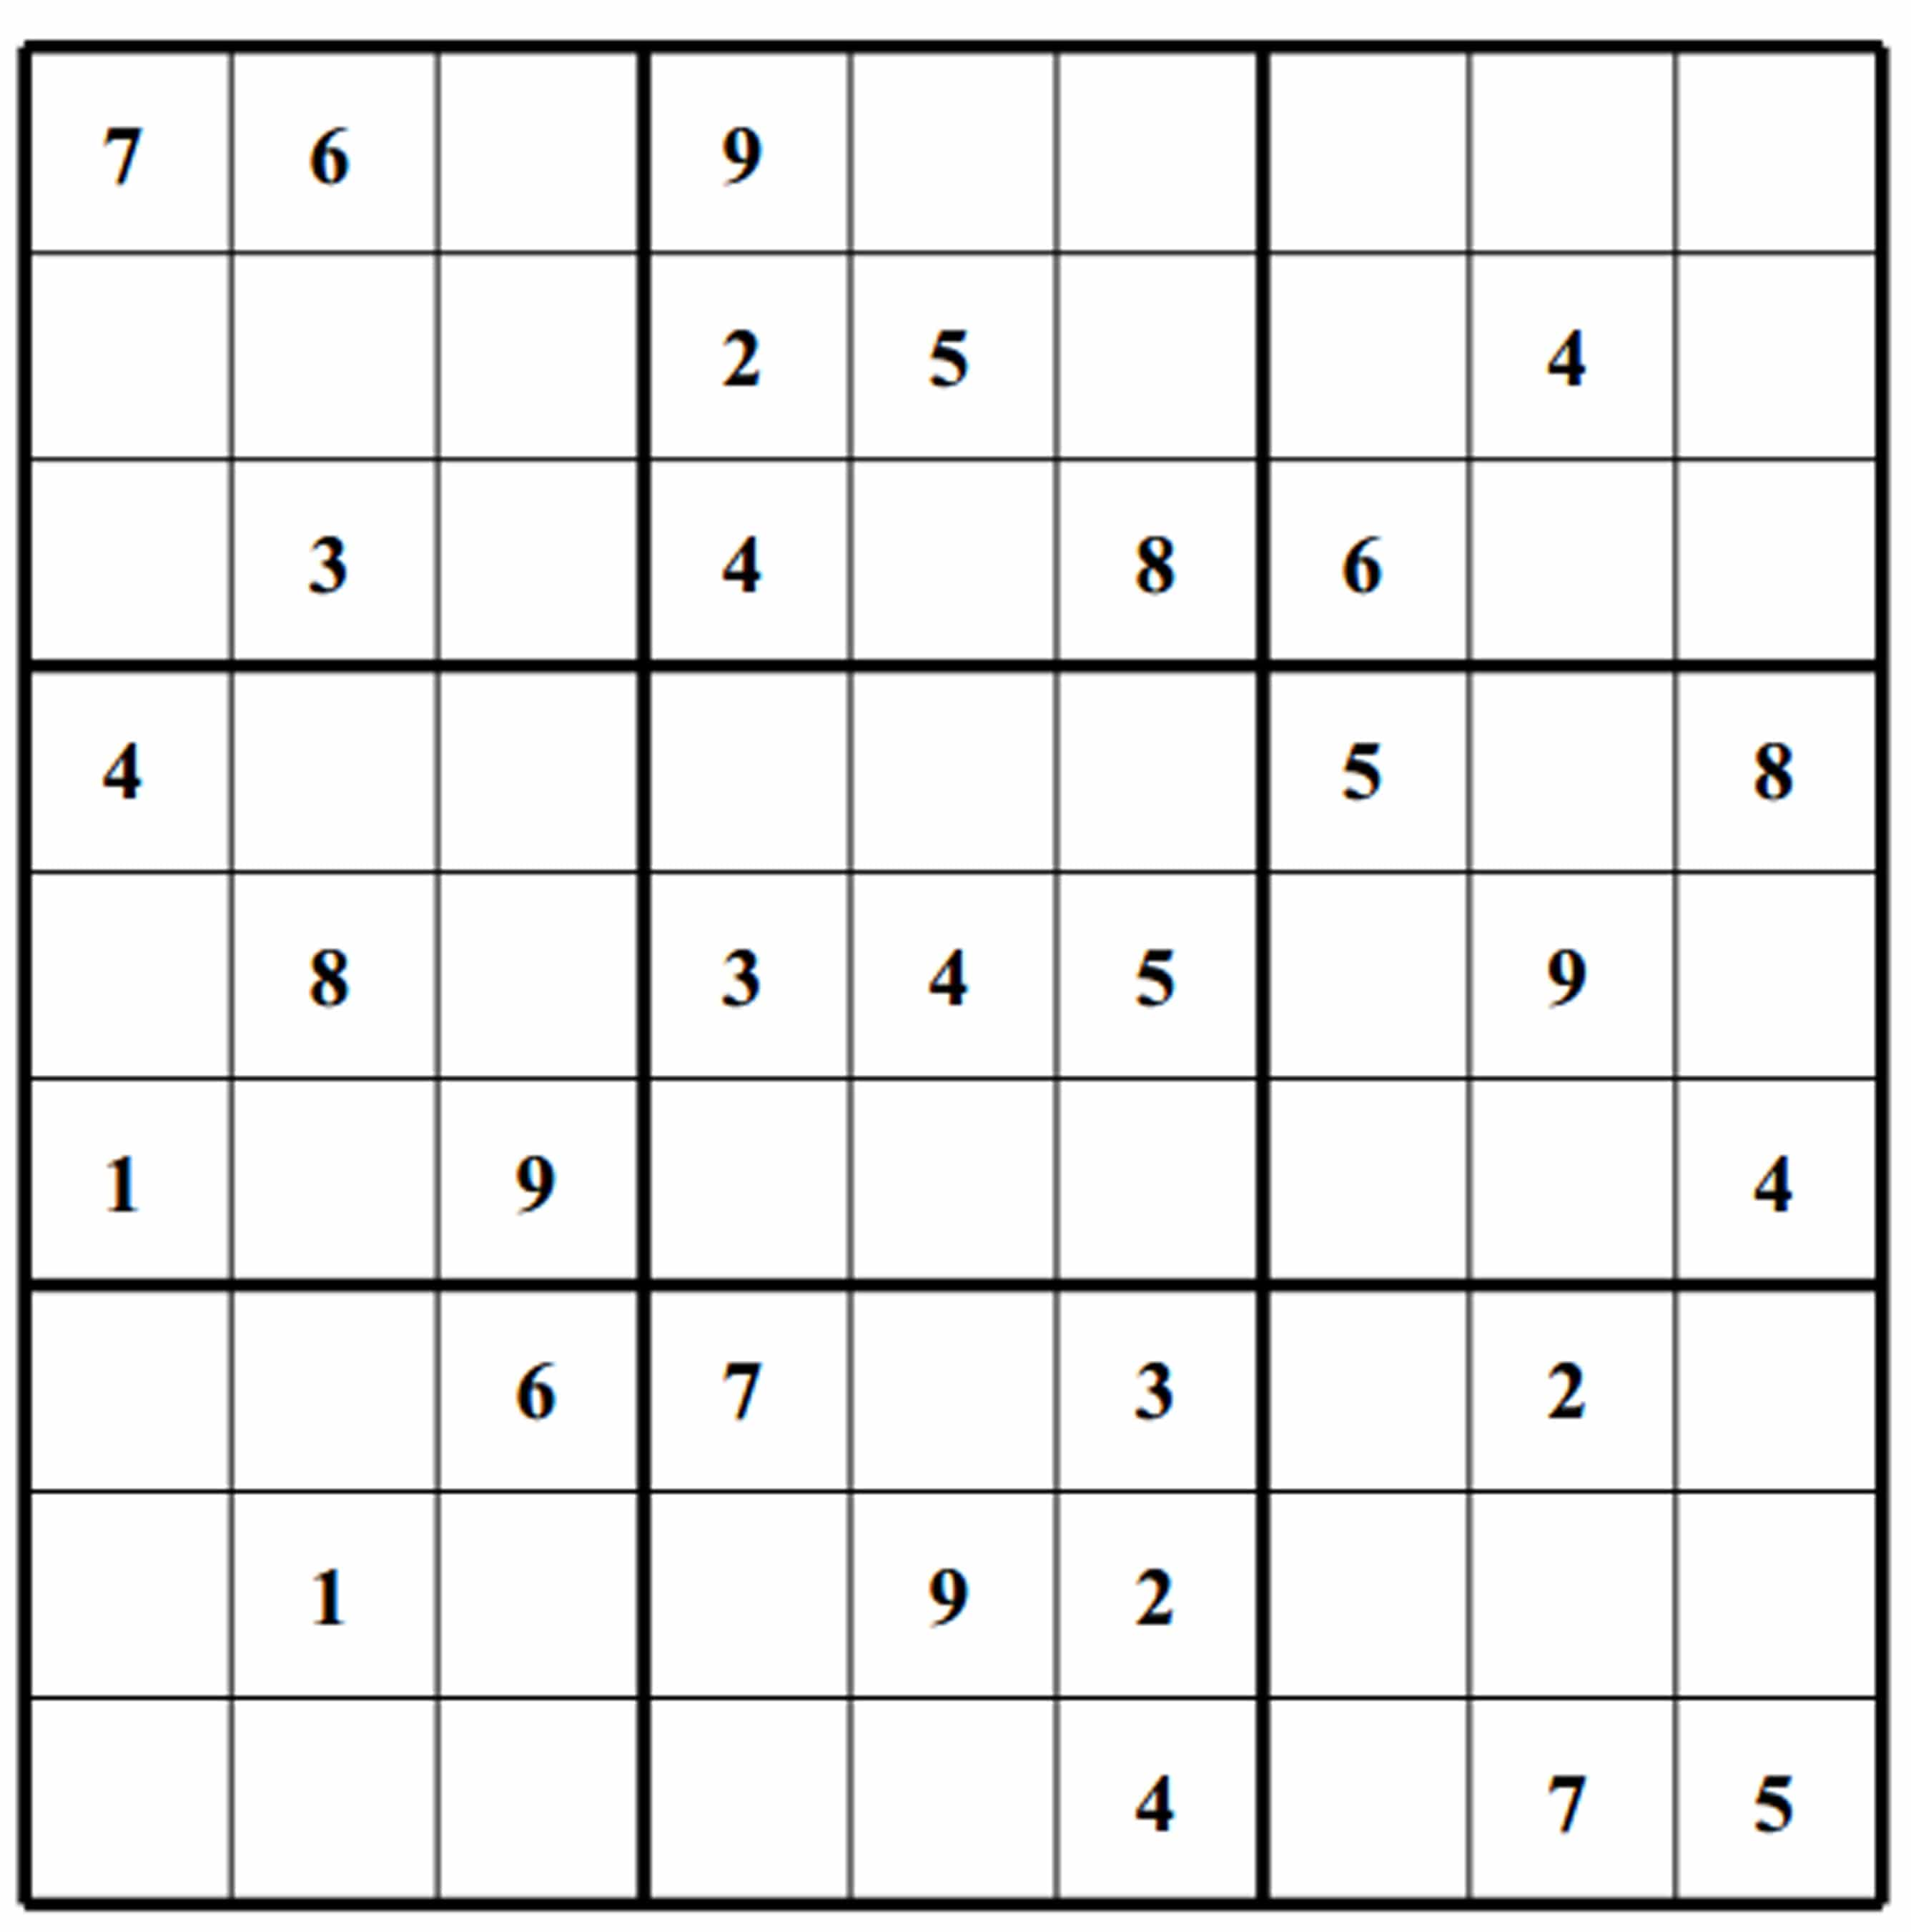 Save Easy Sudoku Puzzles Oppidan Library